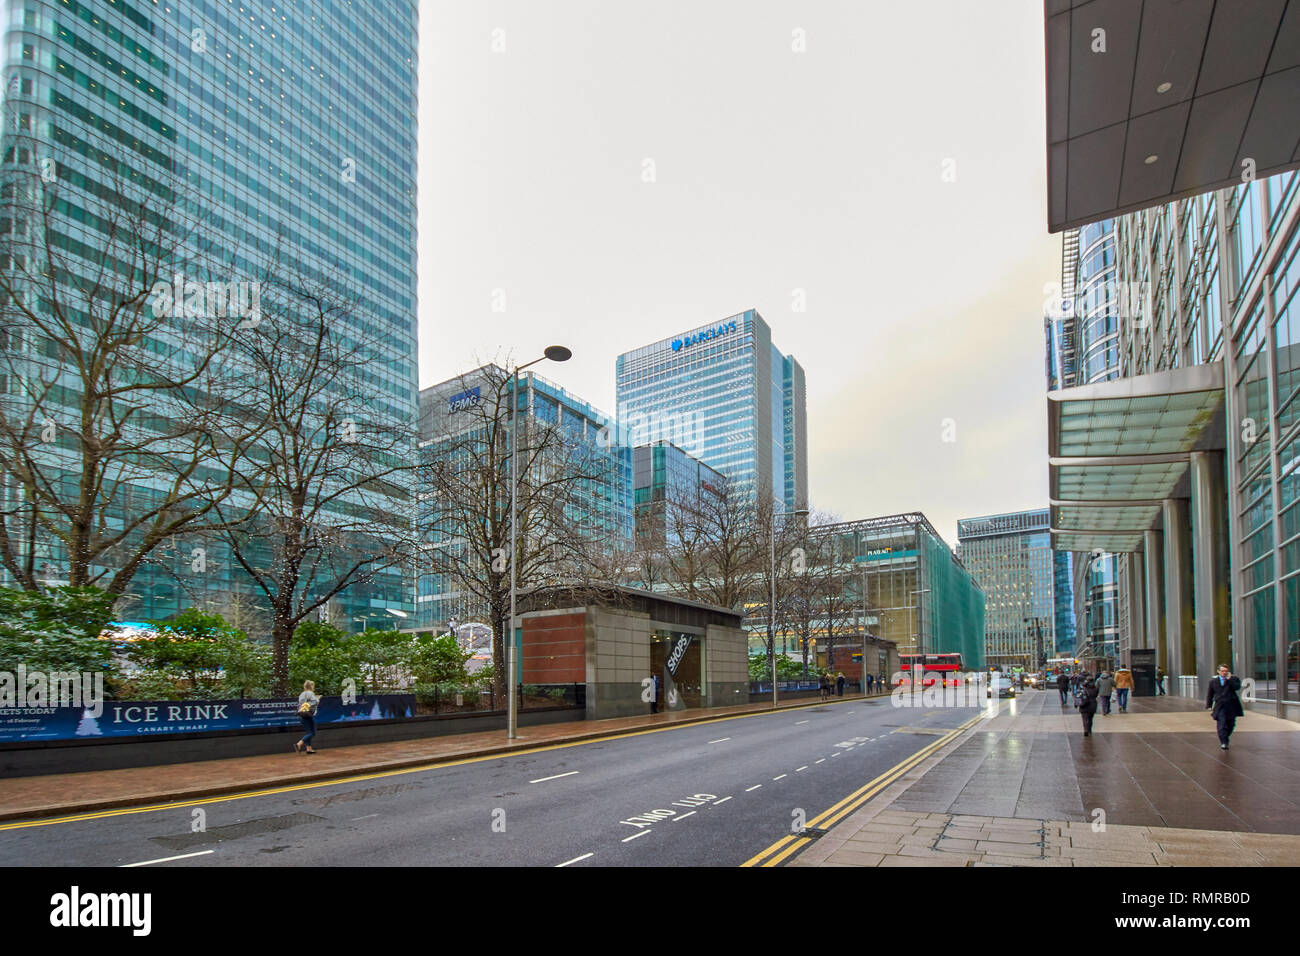 LONDON CANARY WHARF CANADA SQUARE ICE RINK AREA AND CITIGROUP BUILDING - Stock Image